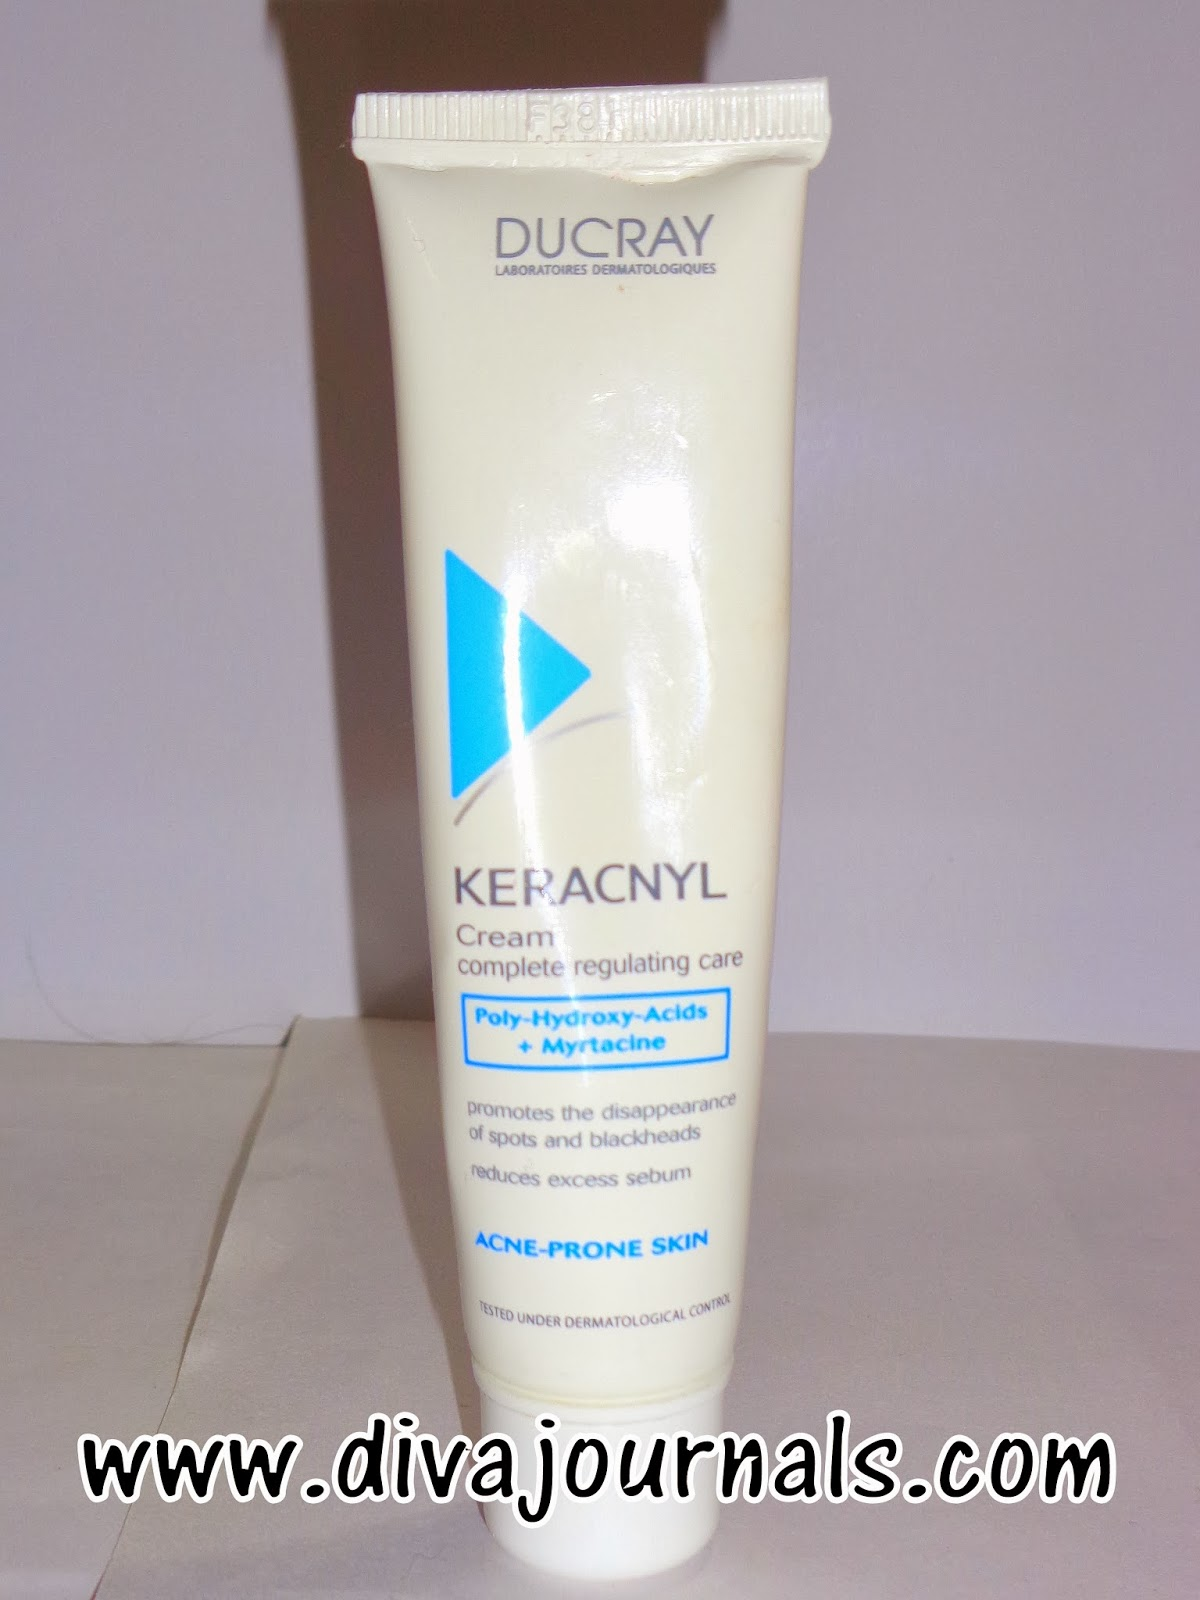 Ducray Keracnyl Complete Regulating Care Cream